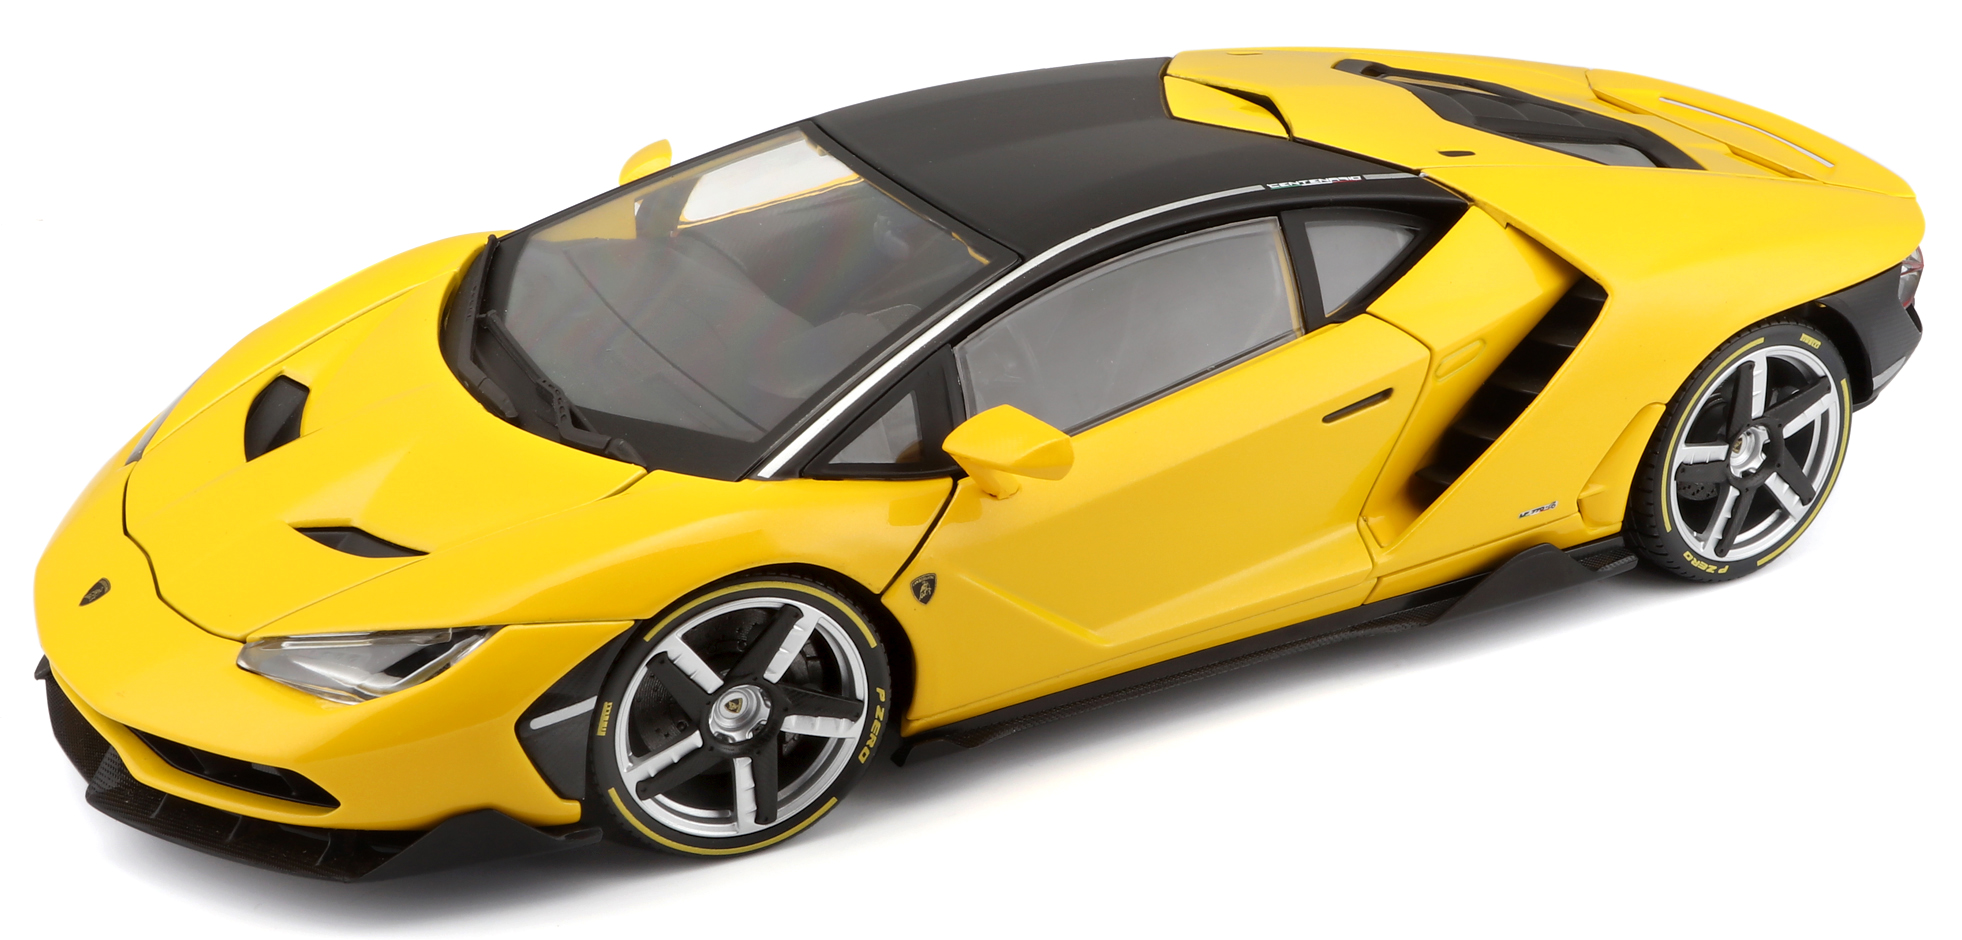 Lamborghini Centenario 2016 yellow 1:18 Maisto Exclusive